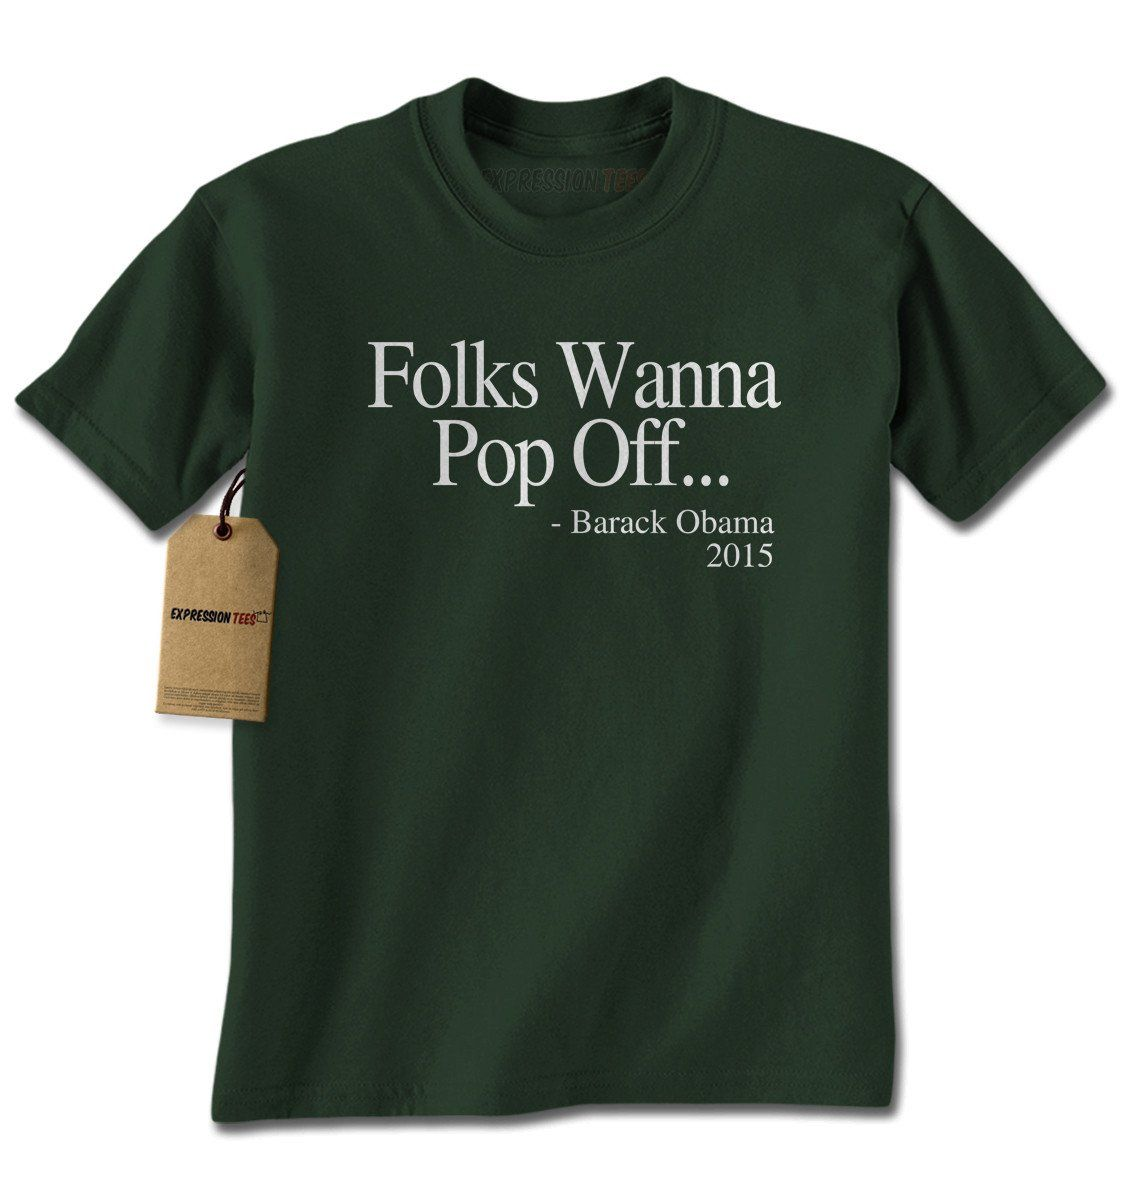 Folks Wanna Pop Off Obama Quote Mens T-shirt